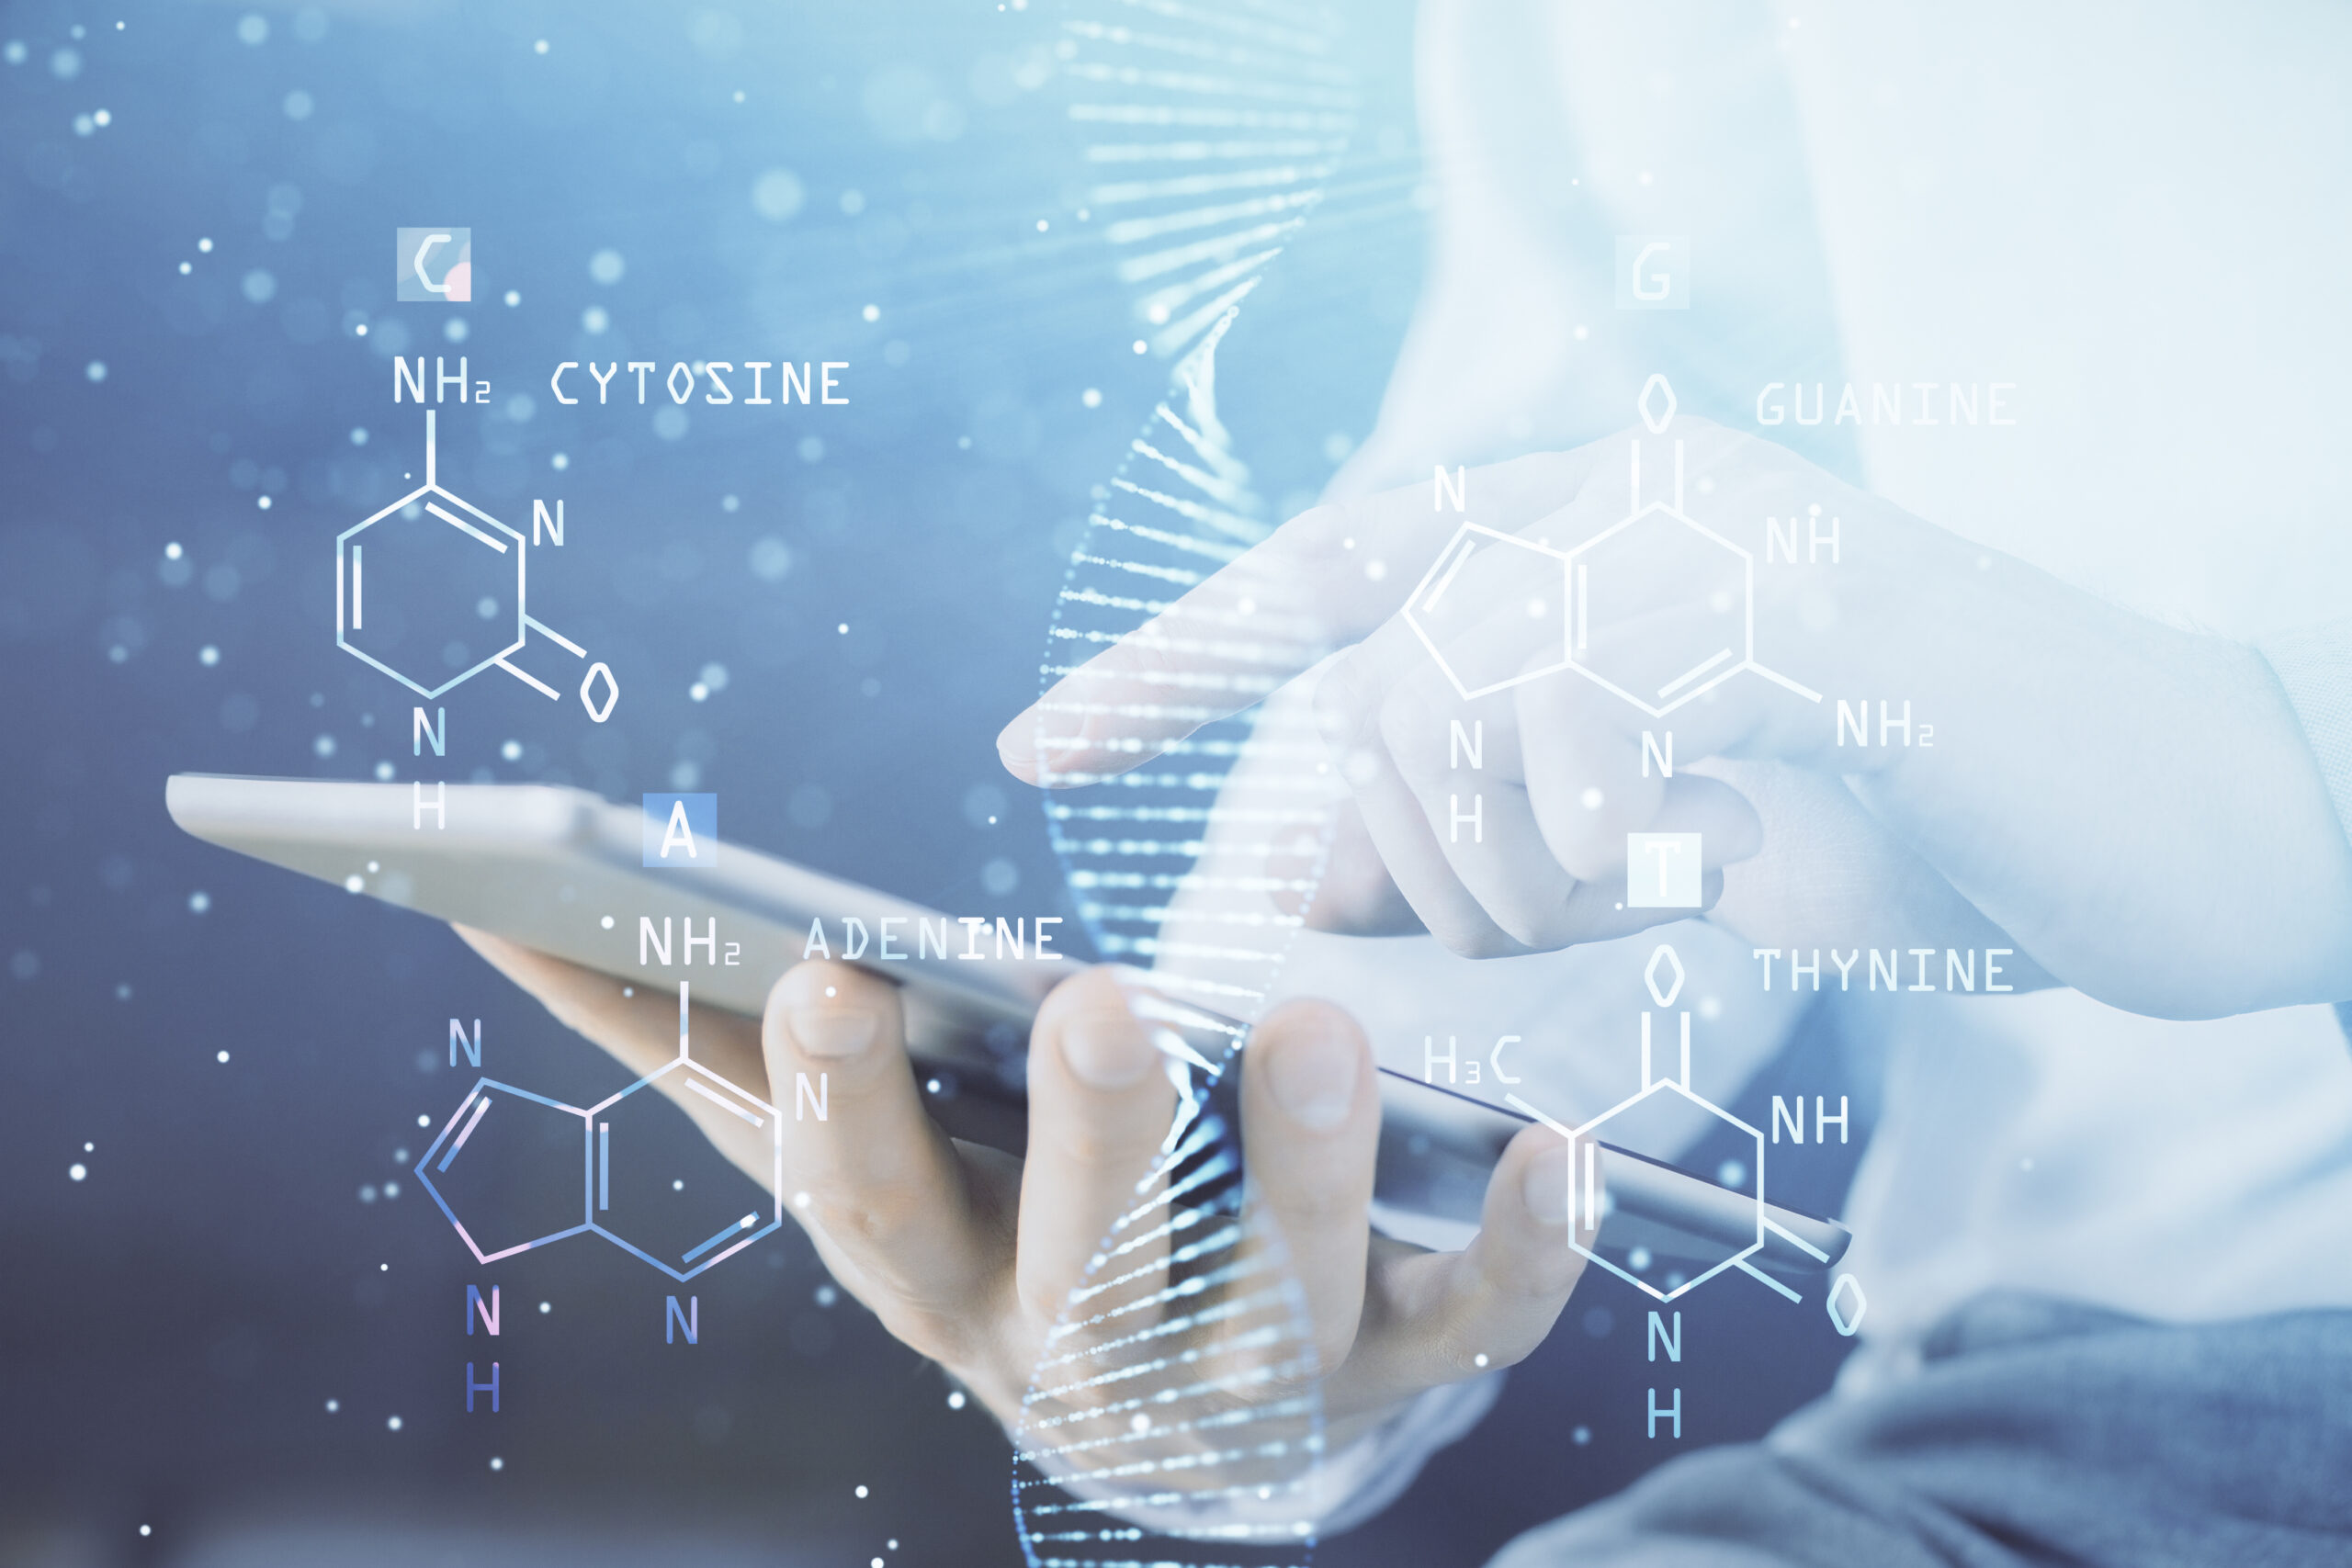 Double exposure of man's hands holding and using a phone and DNA drawing. Medical education concept.